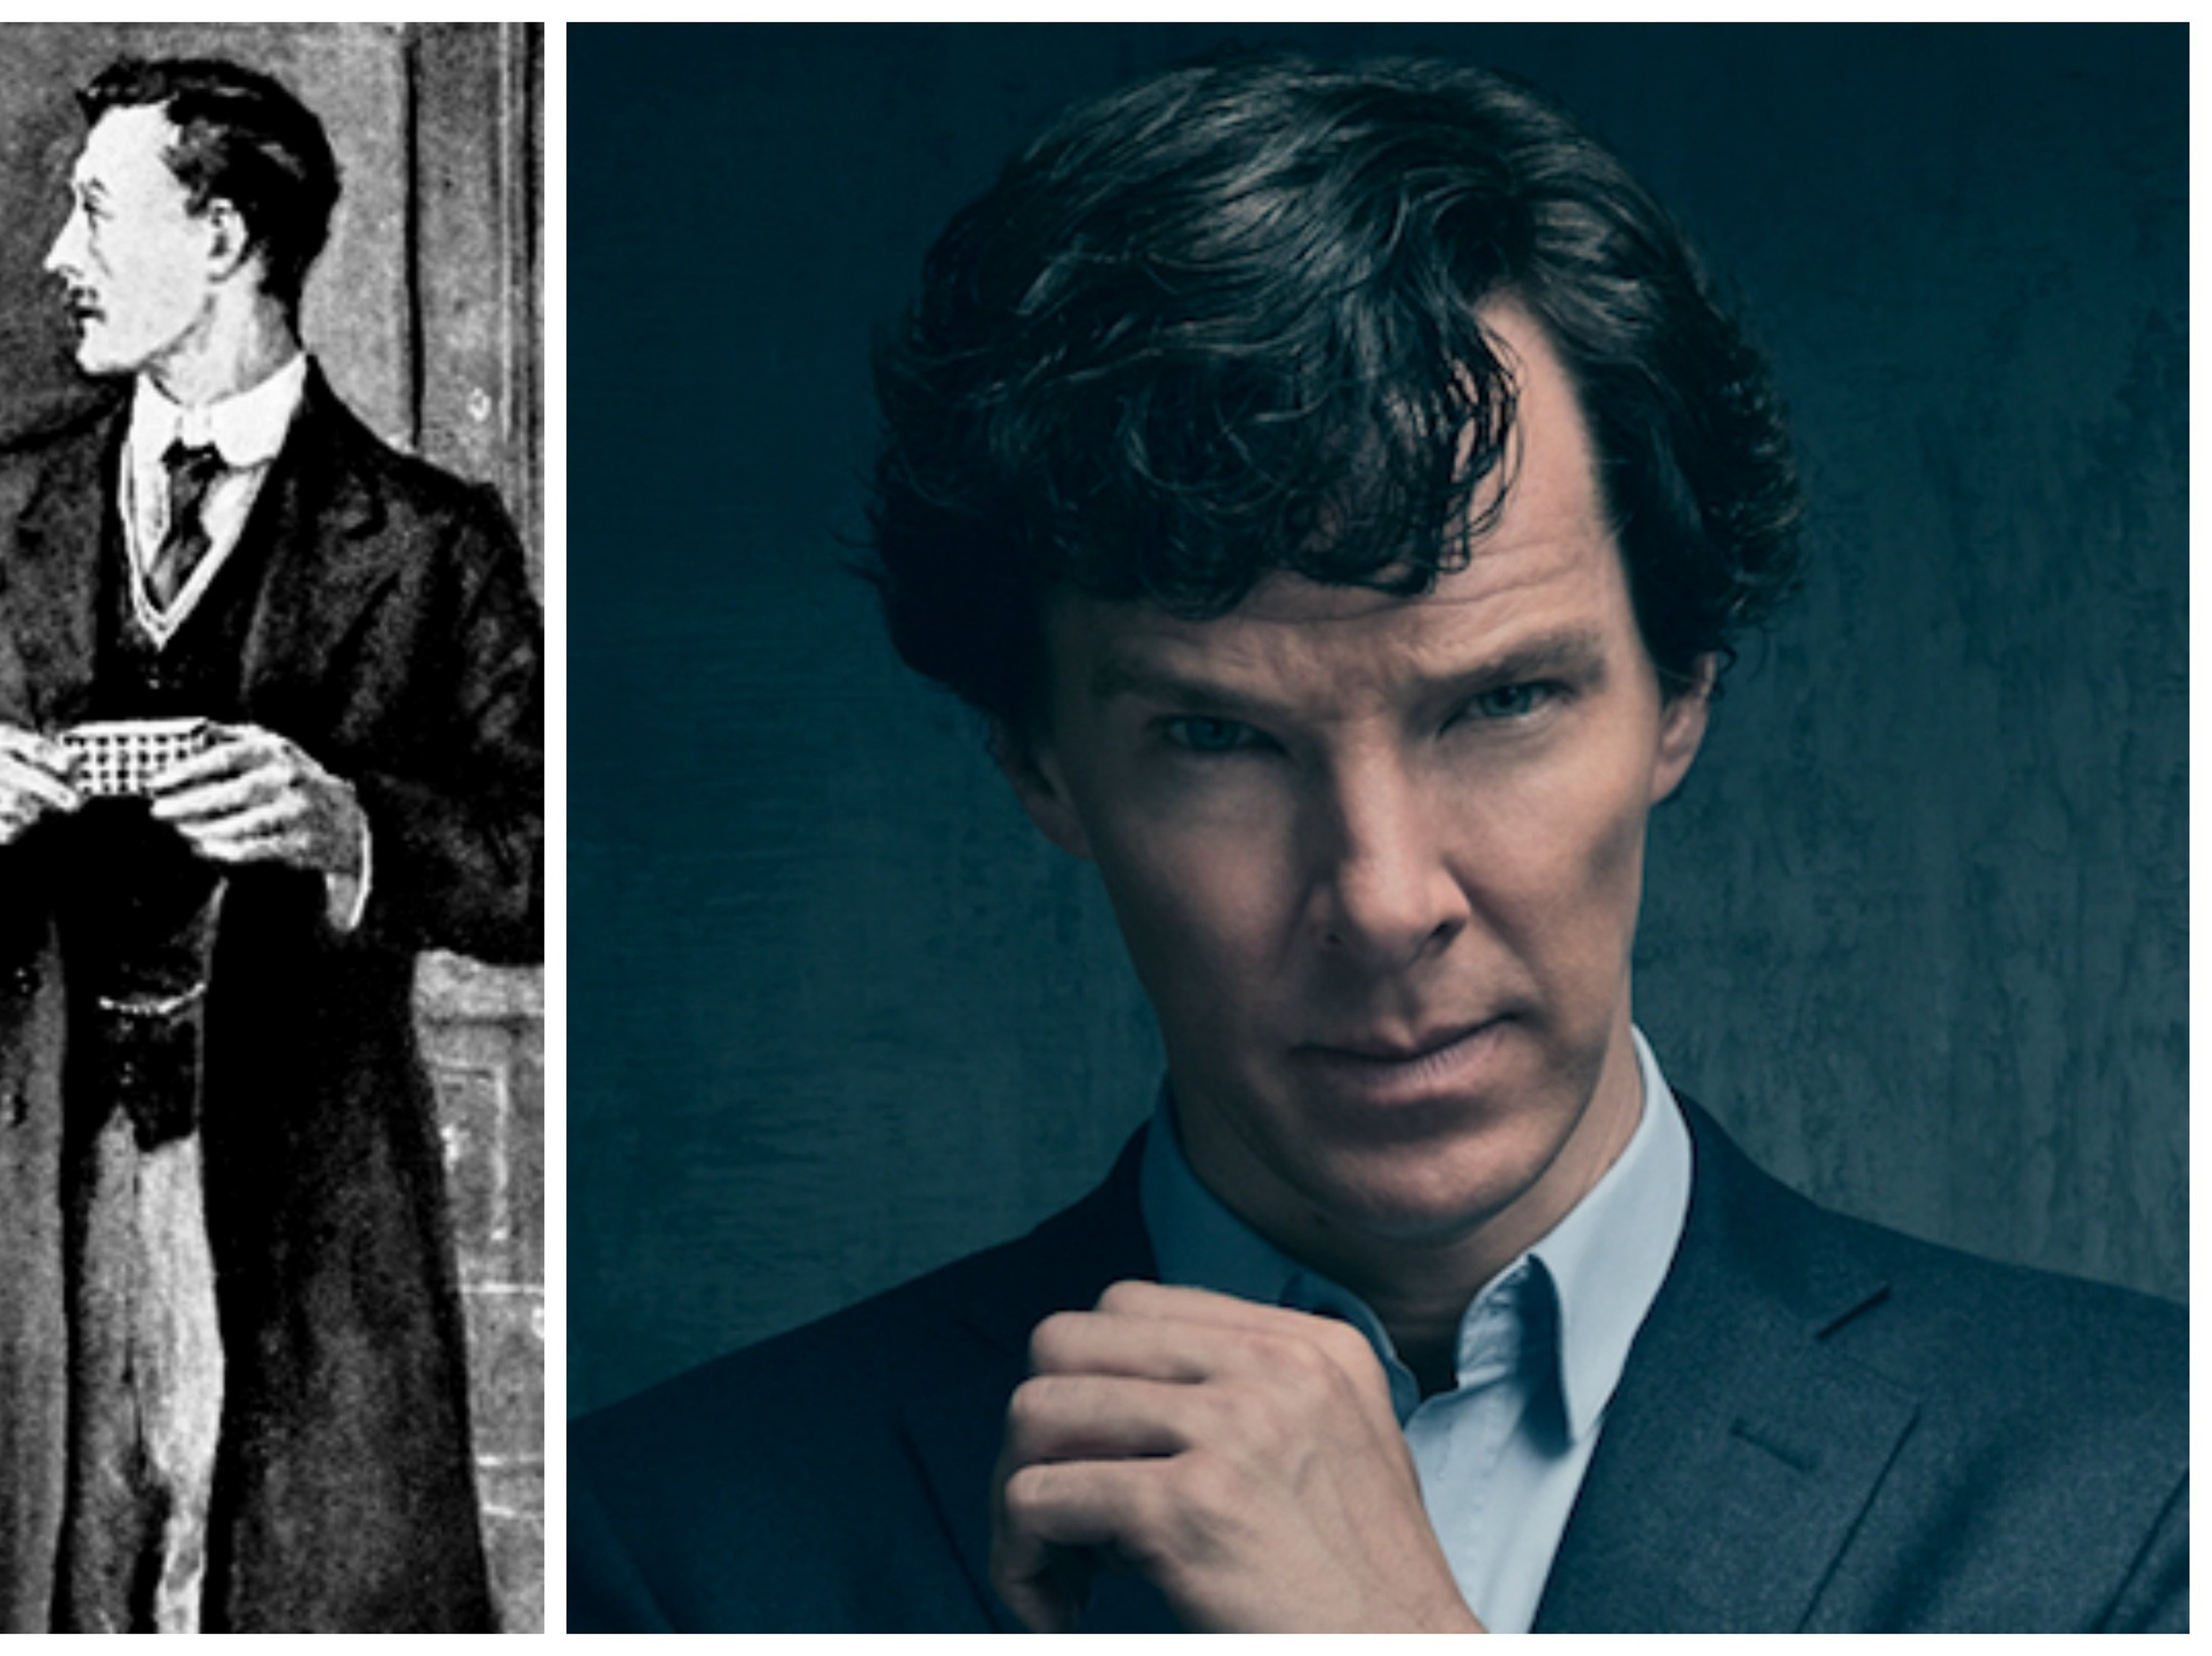 Watch for These 4 Classic Book References in 'Sherlock' Season 4